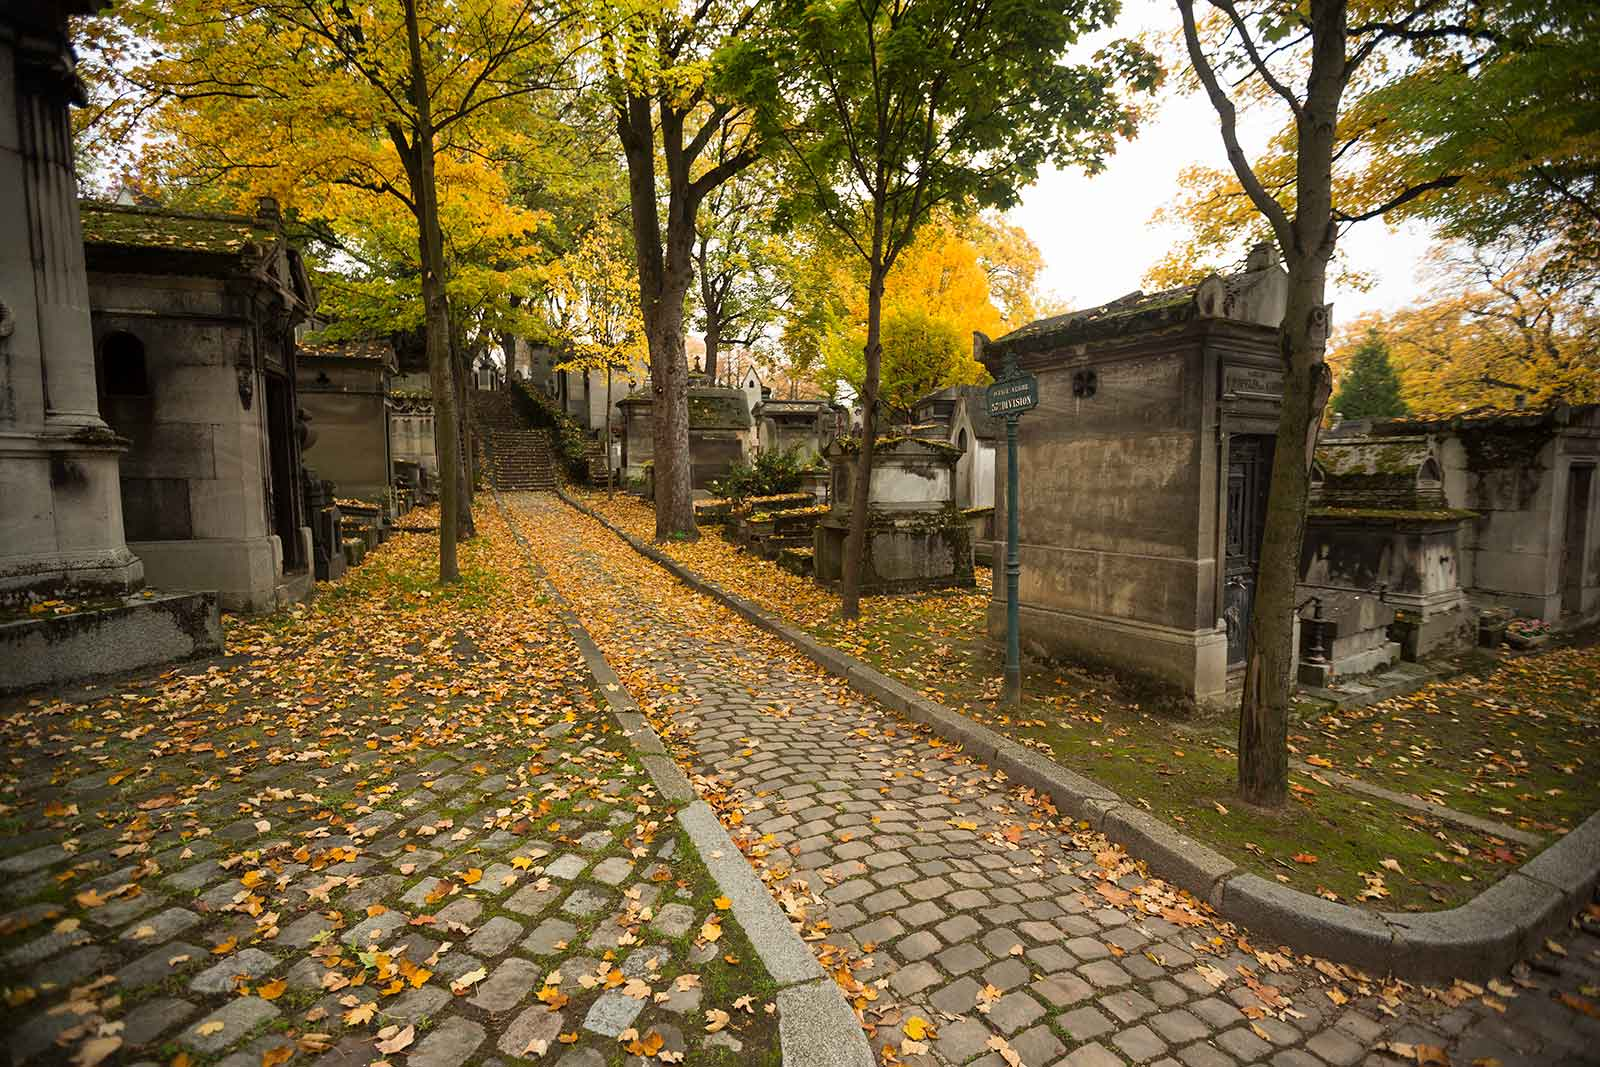 The Père Lachaise cemetery takes its name from King Louis XIV's confessor, Father François de la Chaise.